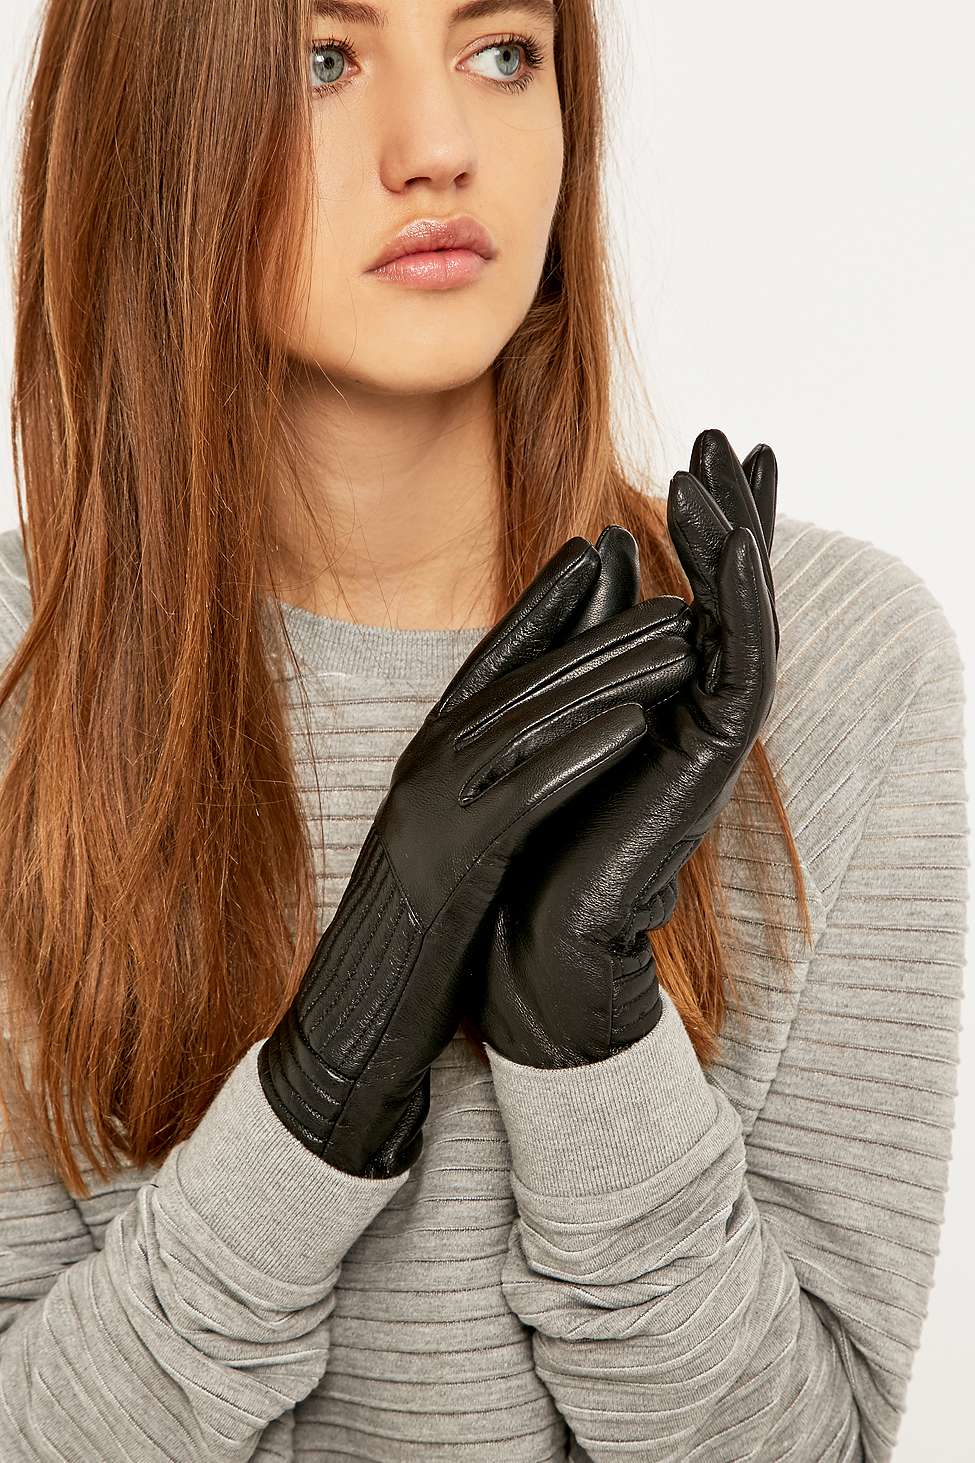 Black leather gloves female - Gallery Previously Sold At Urban Outfitters Women S Leather Gloves